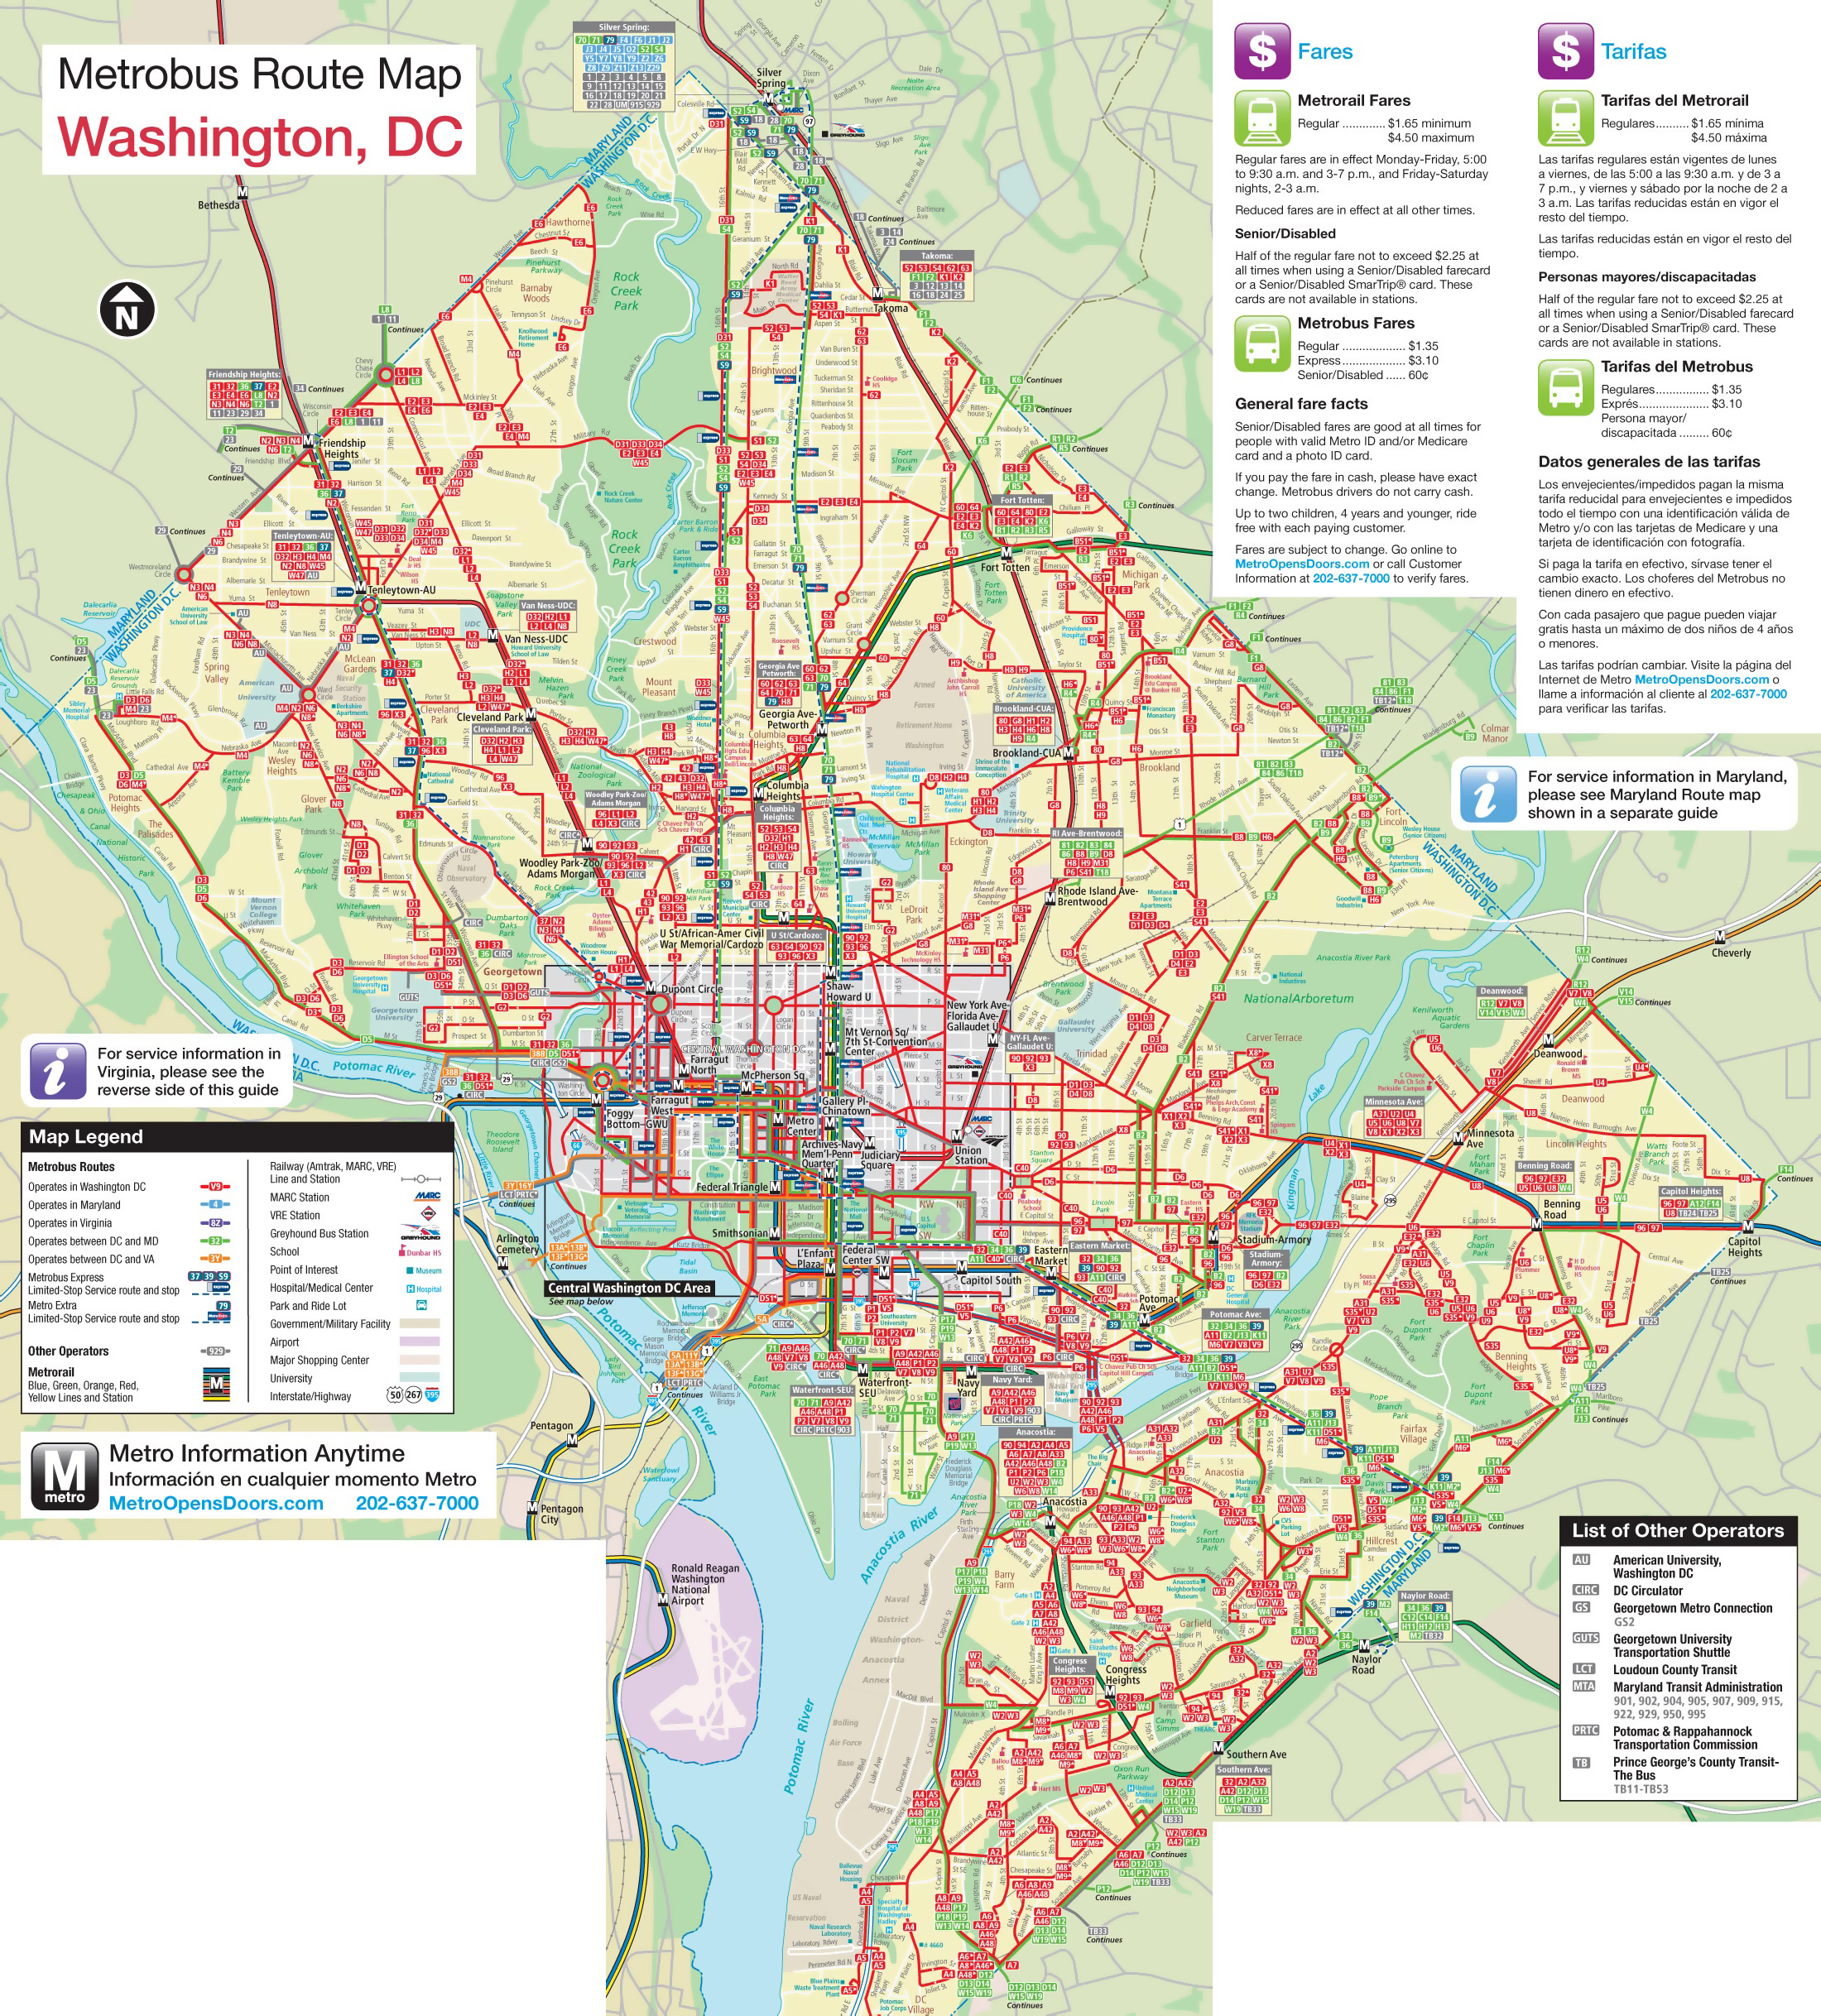 graphic regarding Printable Maps of Washington Dc called Weighty Metrobus direction map of Washington D.C.. Washington D.C.